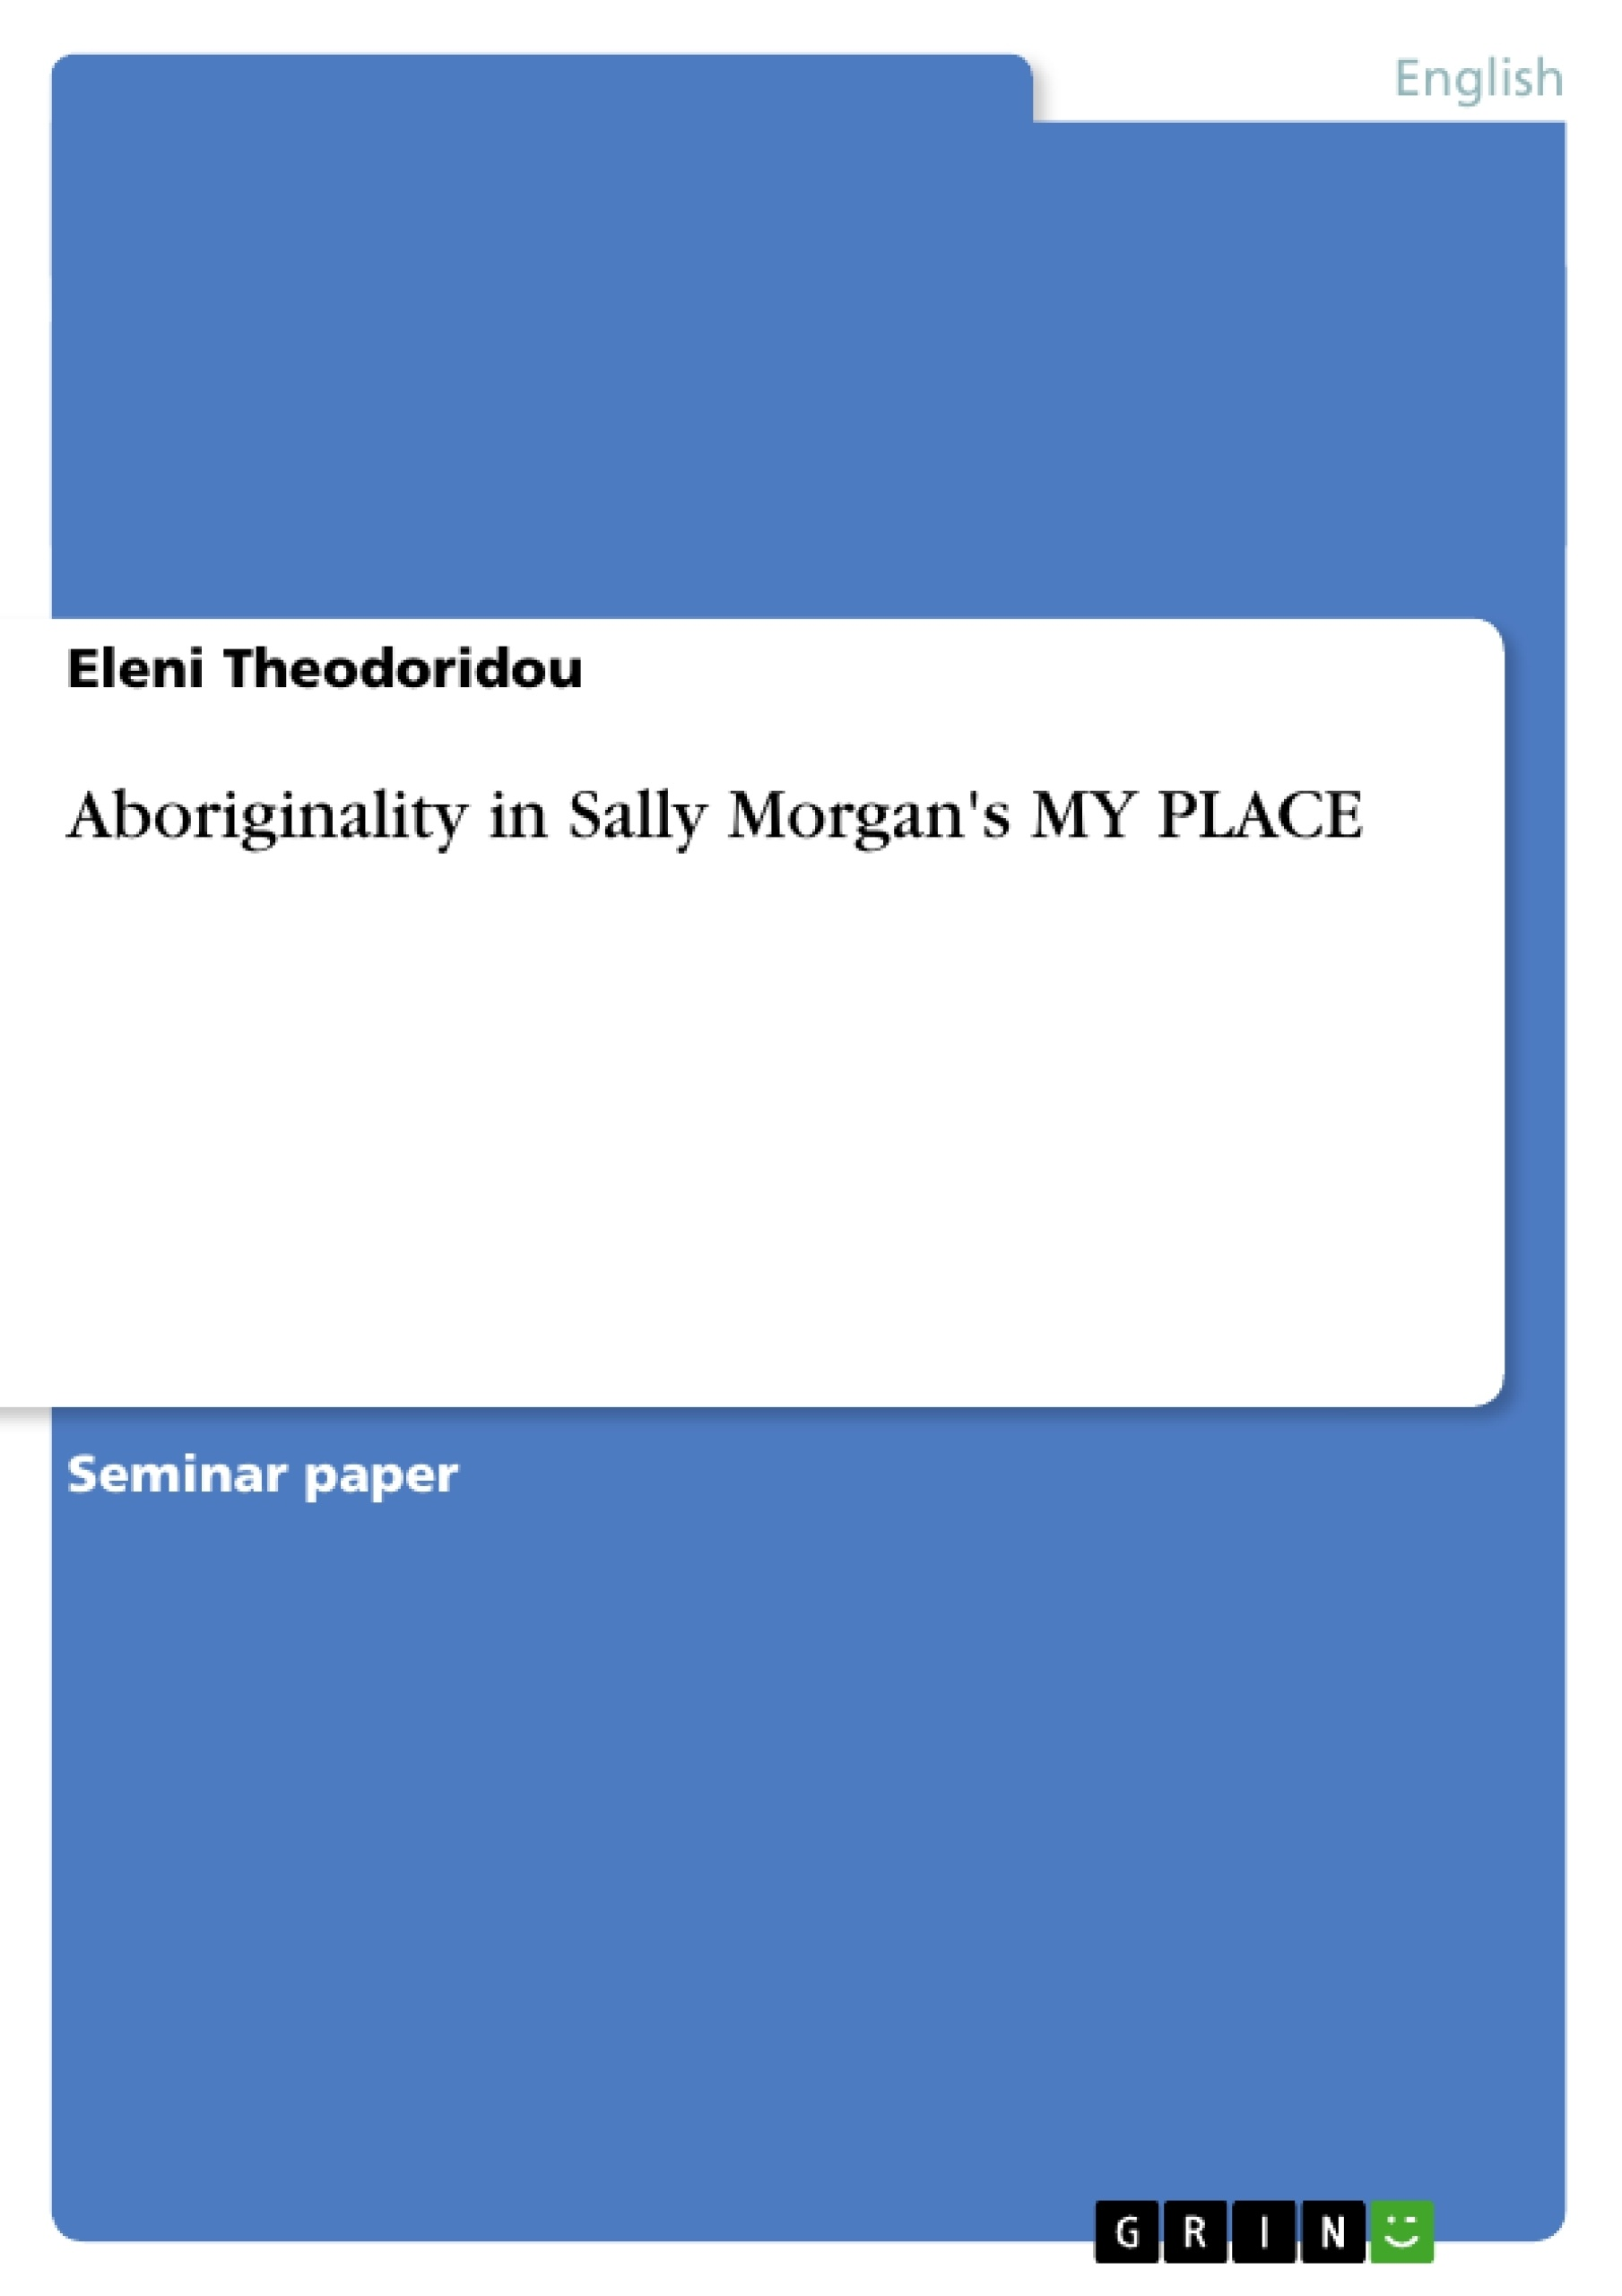 Title: Aboriginality in Sally Morgan's MY PLACE